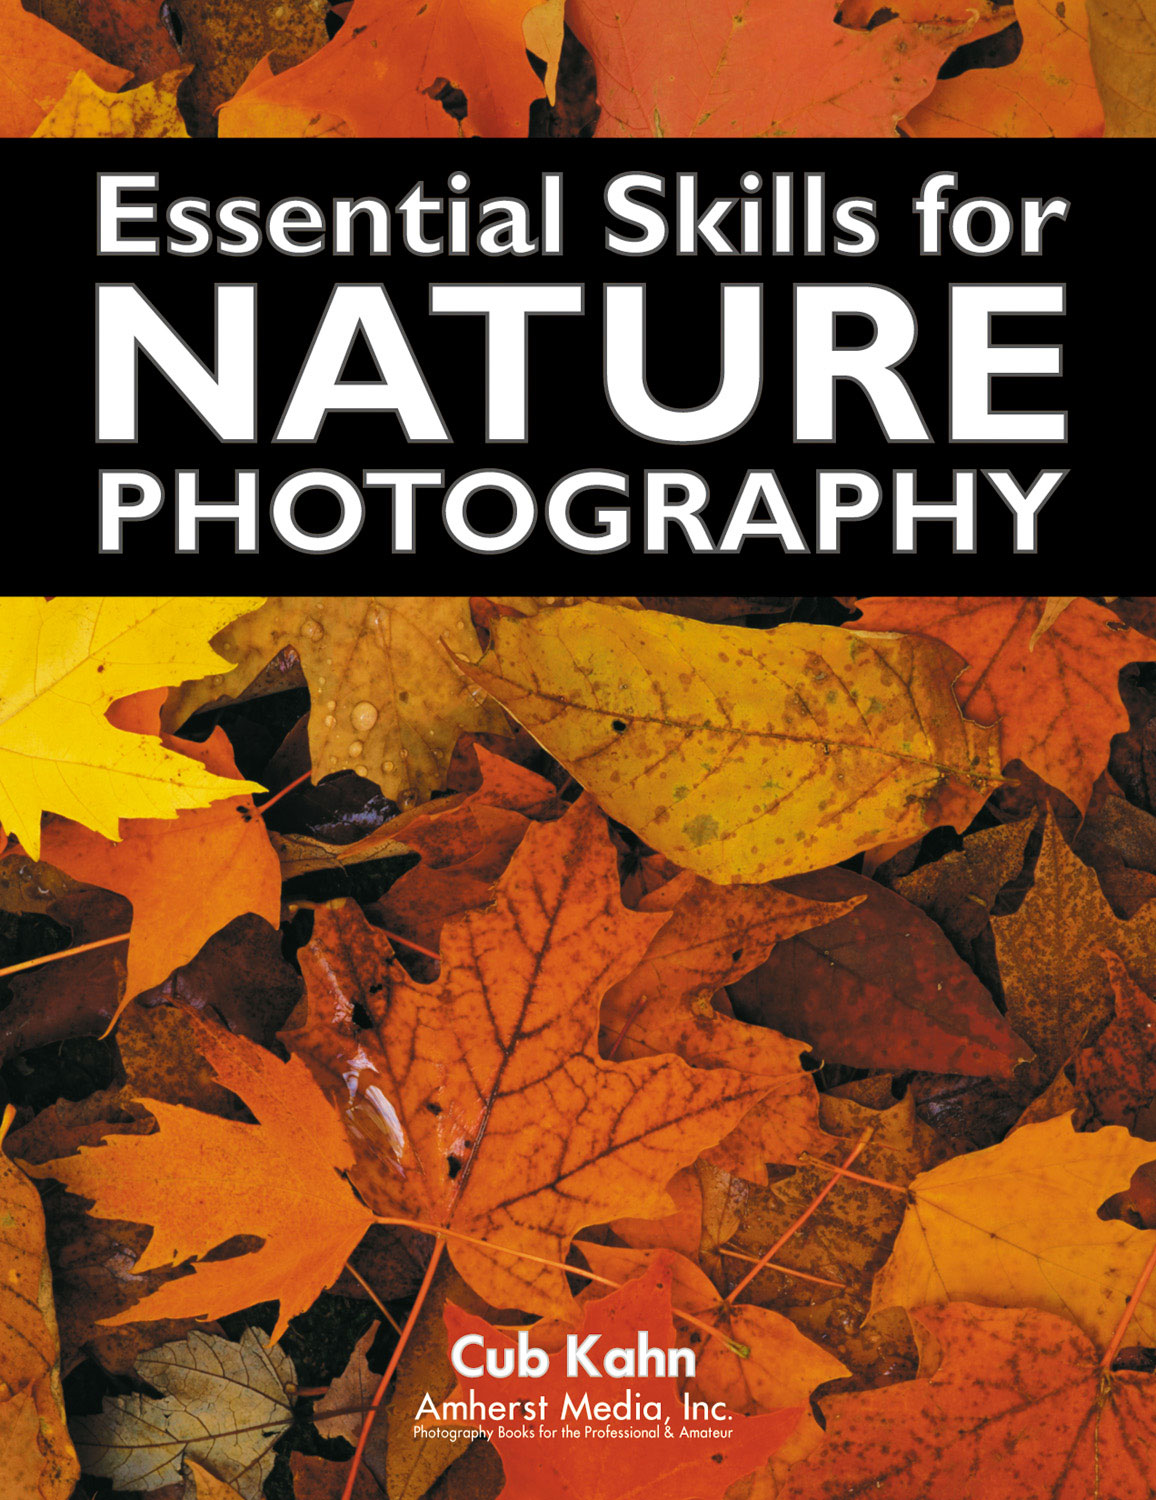 Essential Skills for Nature Photography